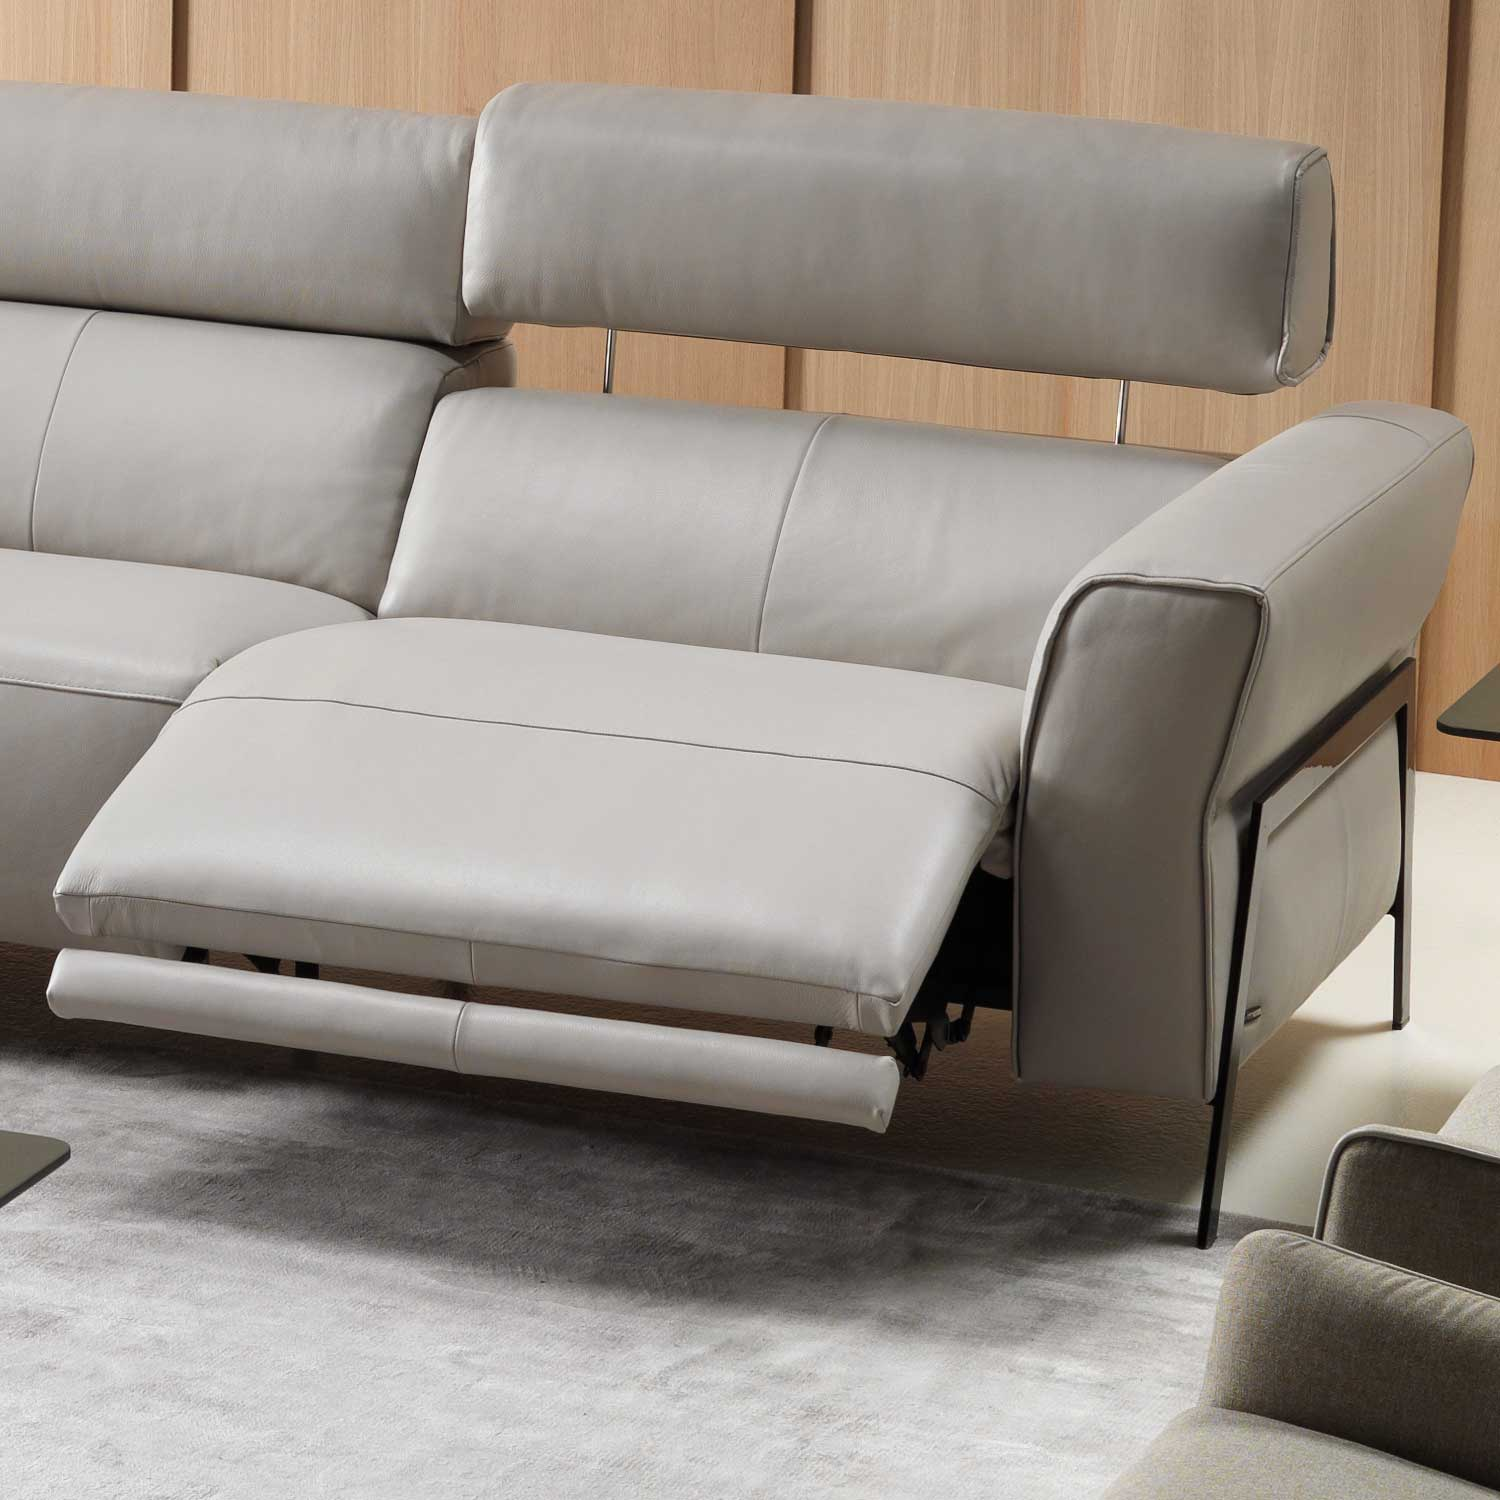 Natuzzi Editions Eleganza Leather Corner Sofa